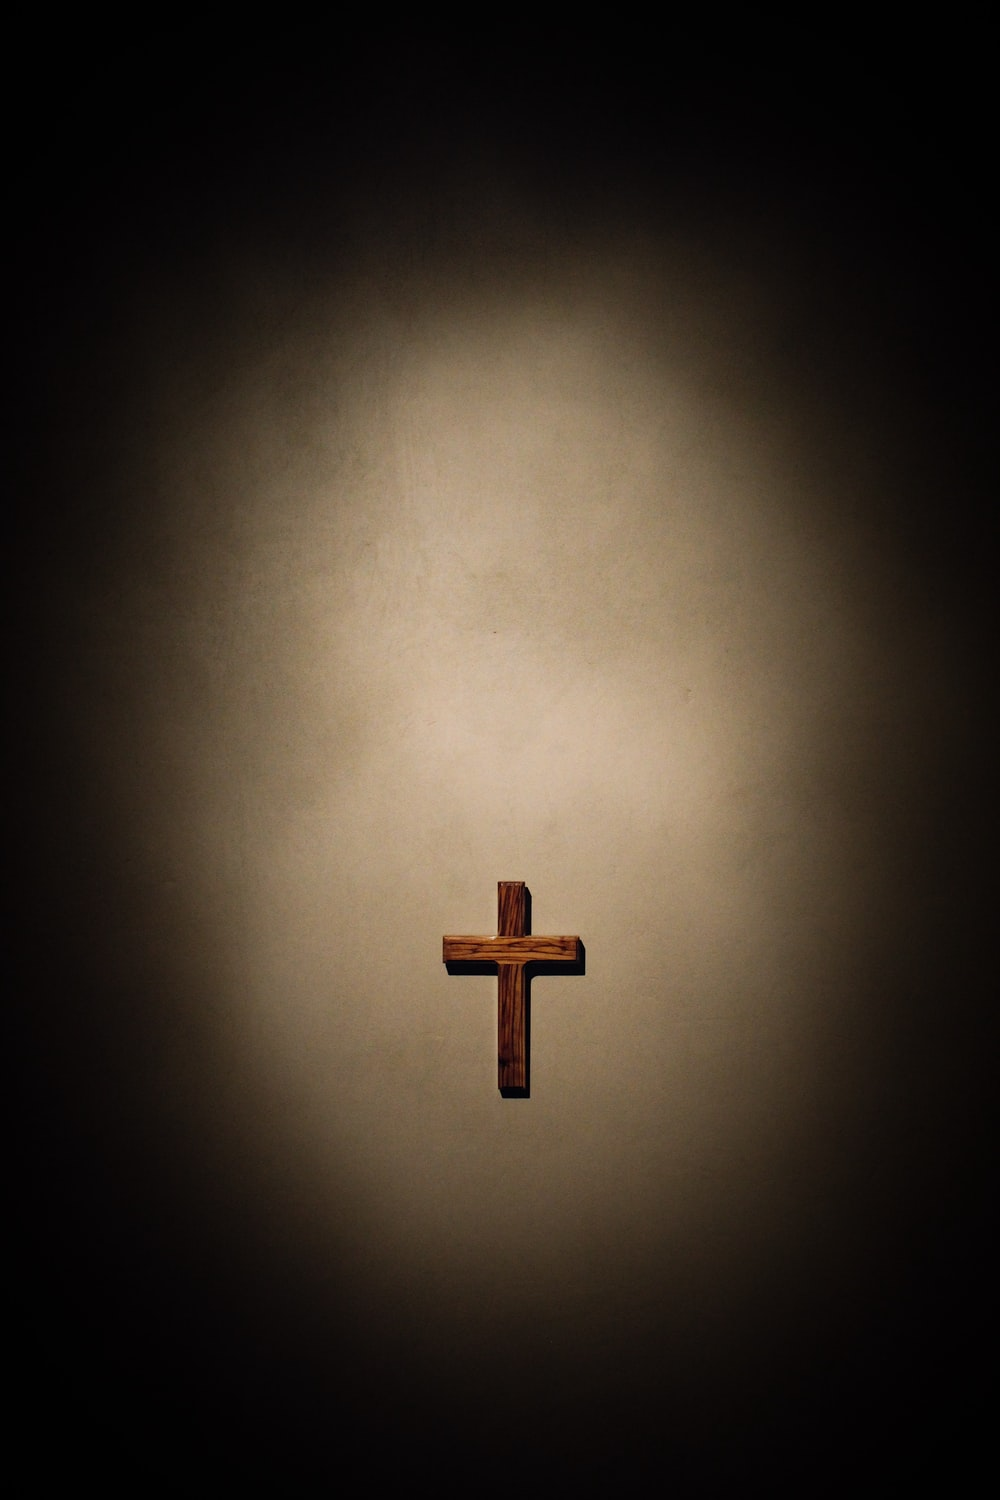 Cross Wallpapers Free Hd Download 500 Hq Unsplash